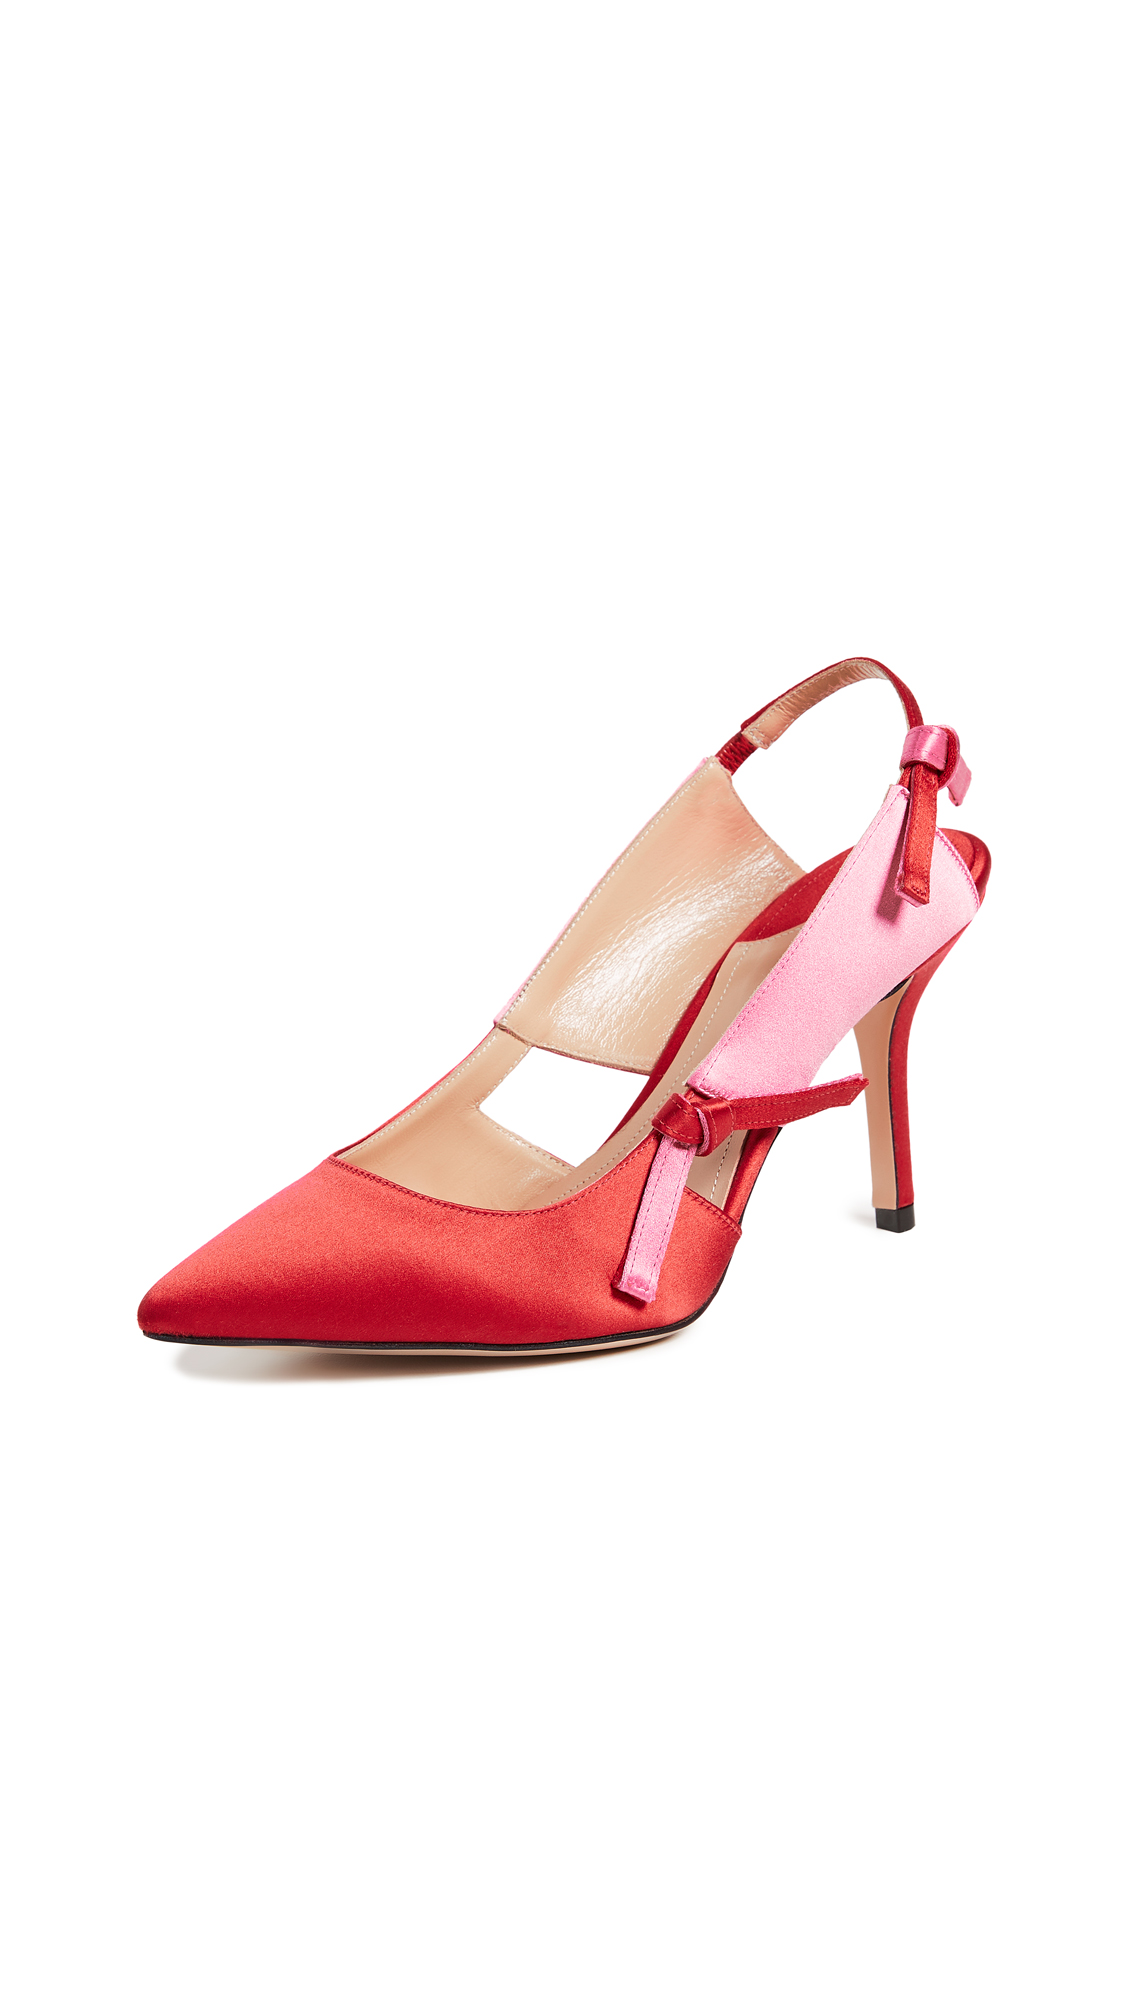 Paul Andrew Salomon 85 Pumps - Lipstick Red/Multi